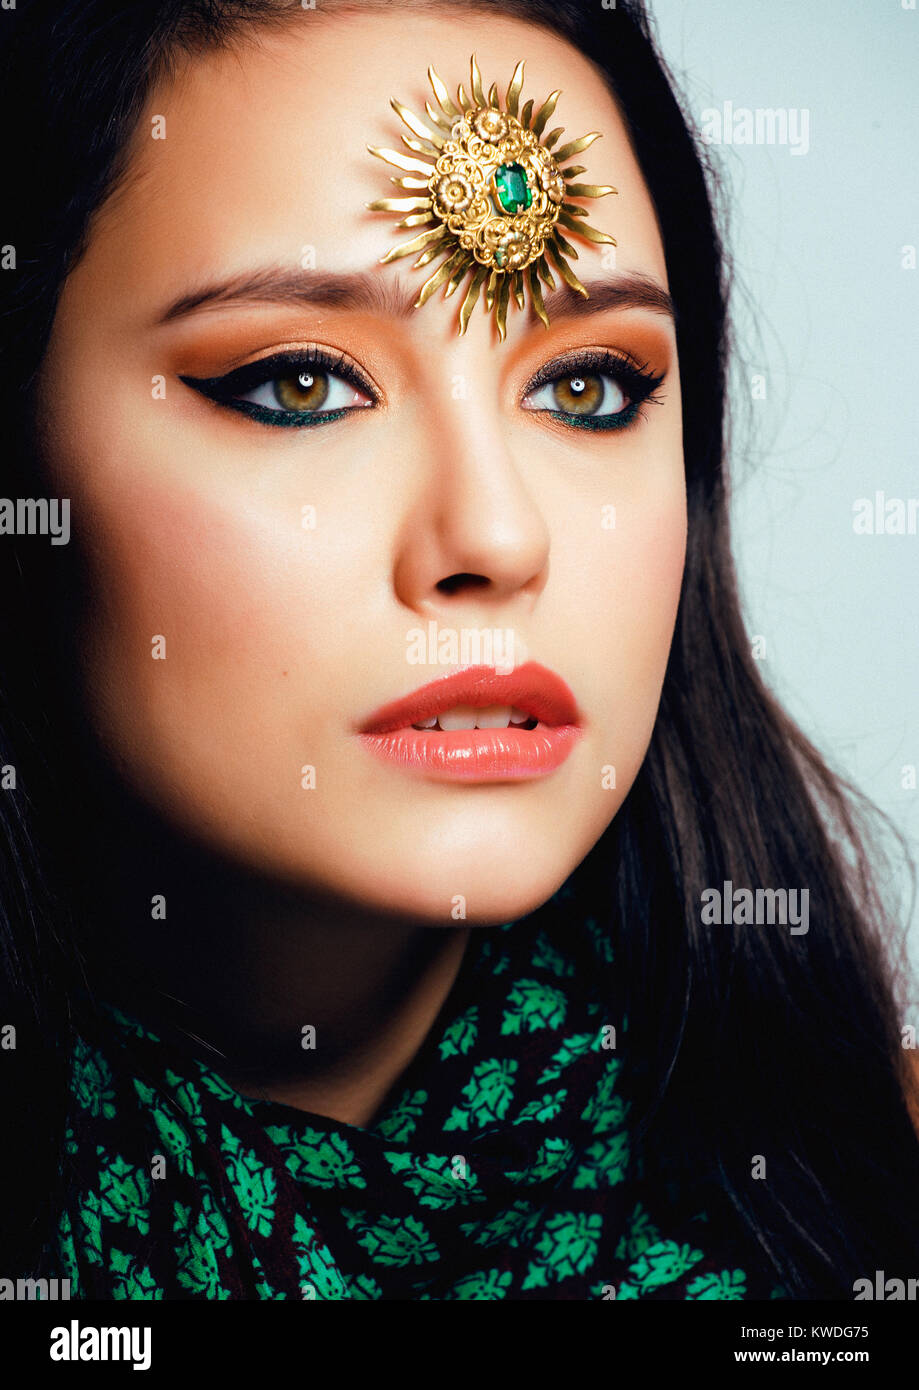 beauty eastern real muslim woman with jewelry close up, bride with star creative makeup, modern art concept - Stock Image